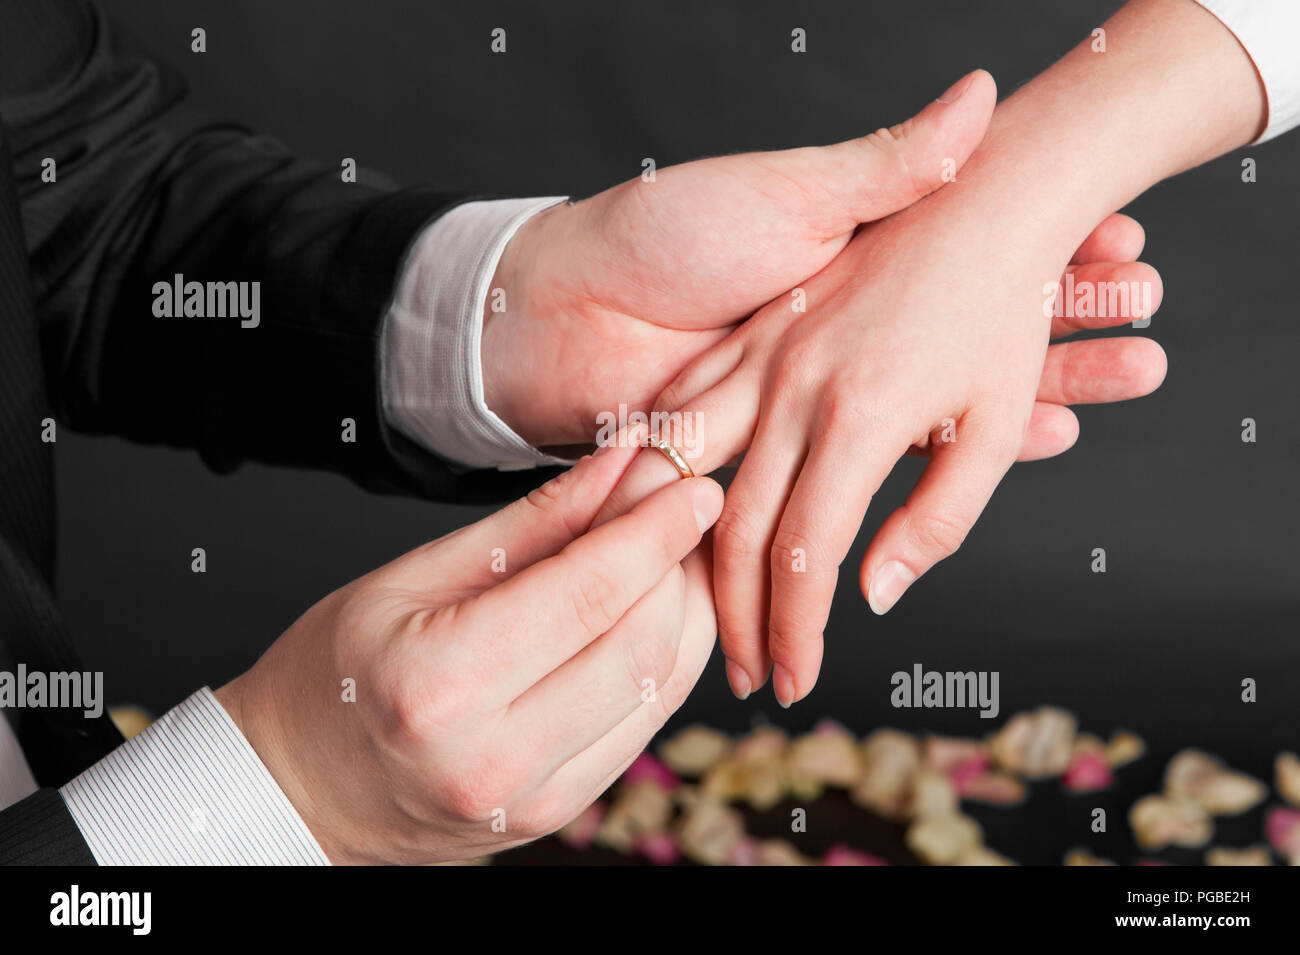 Girl To Marry Stock Photos & Girl To Marry Stock Images - Page 3 - Alamy